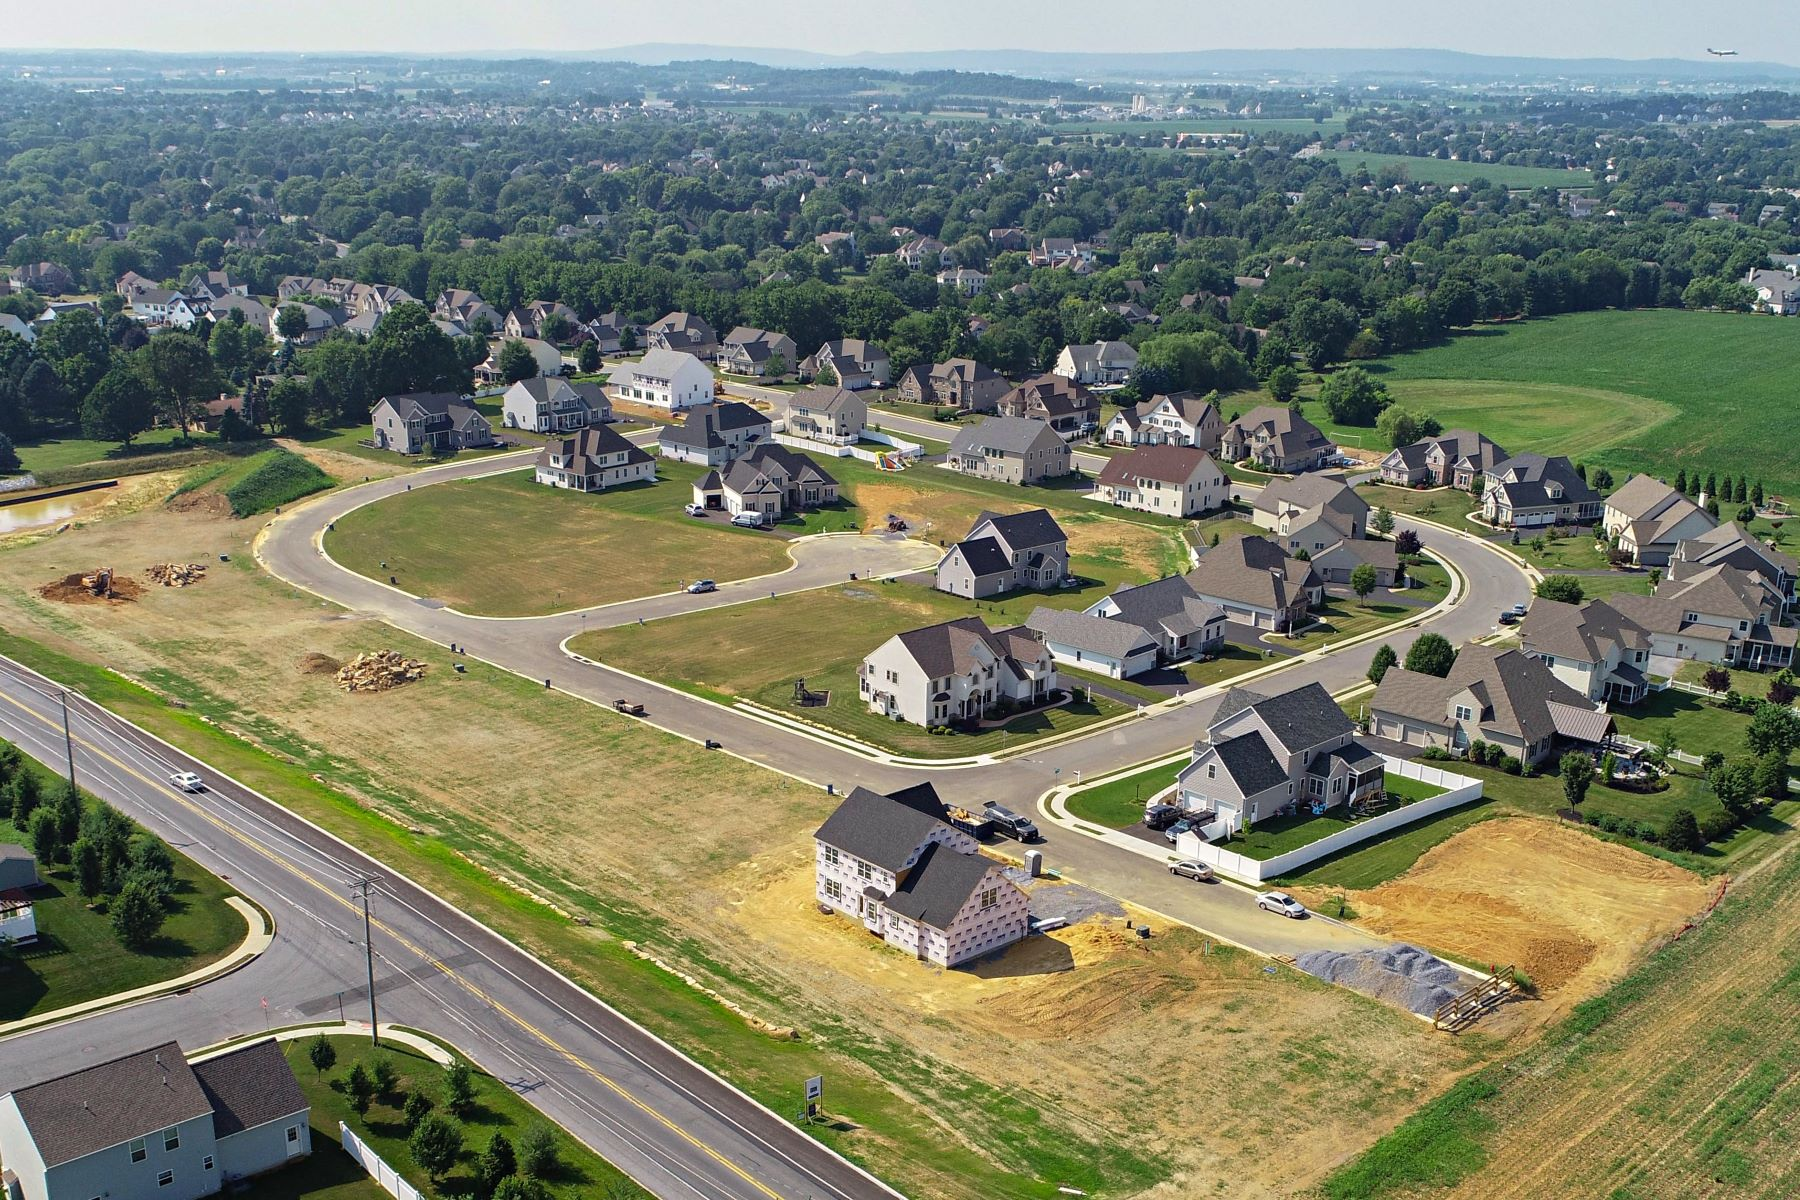 Land for Sale at Lot 20 Amber Drive Lot 20 Amber Drive Lititz, Pennsylvania 17543 United States